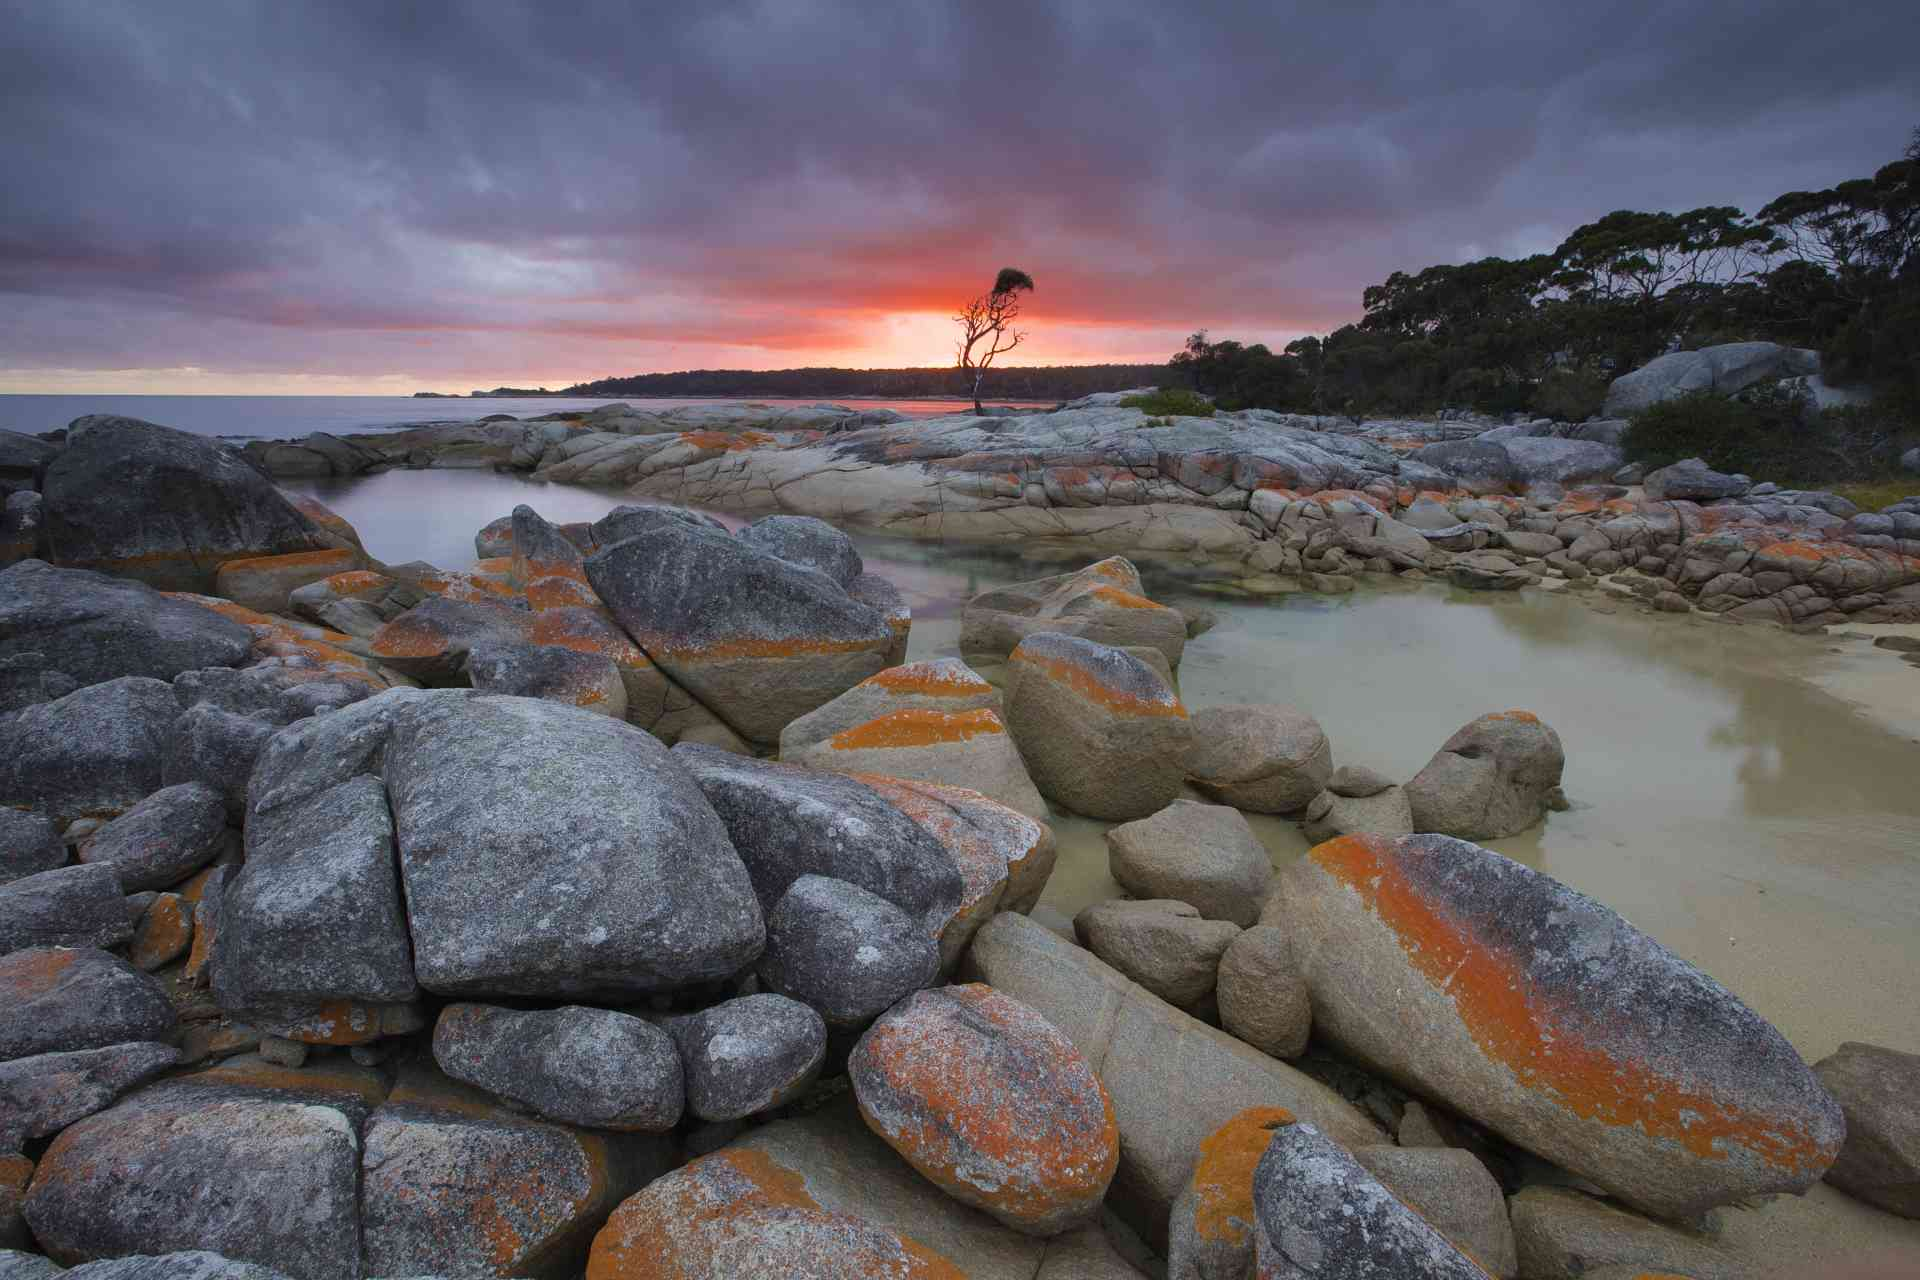 Binalong Bay, Tasmania by Pete Harmsen